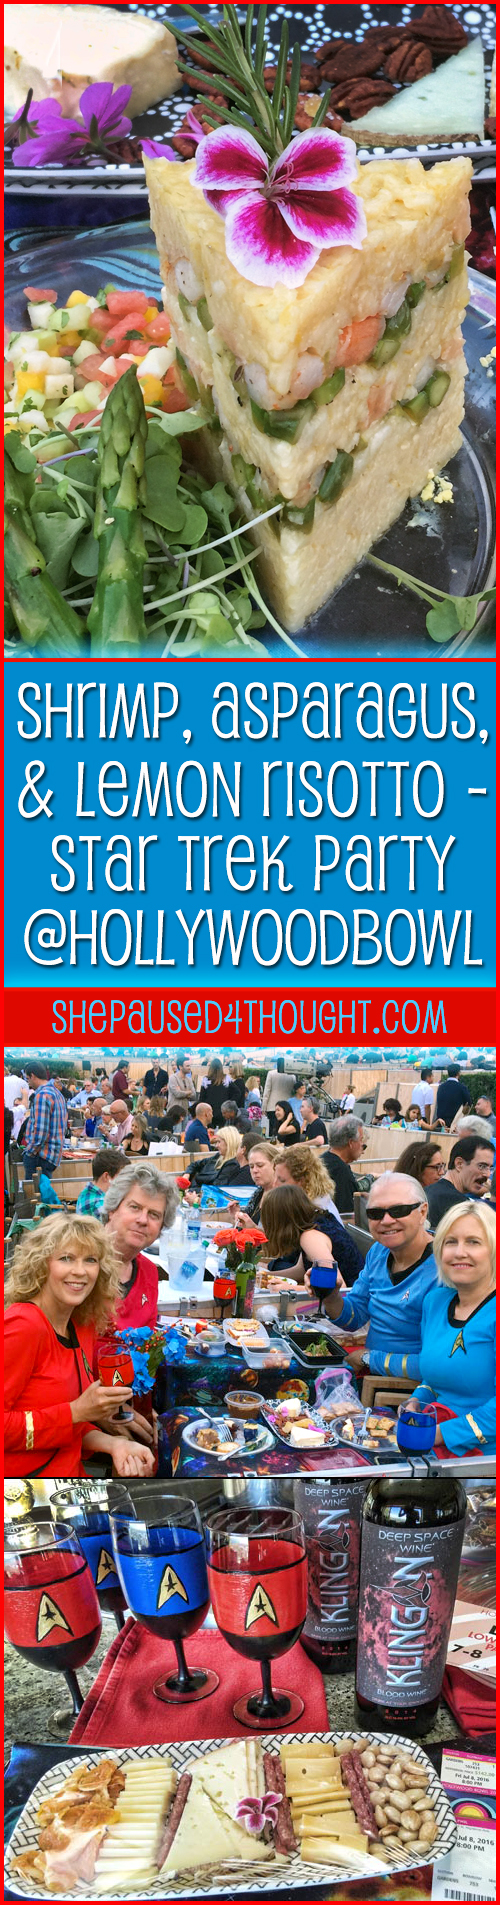 Star Trek Party at Hollywood Bowl | She Paused 4 Thought